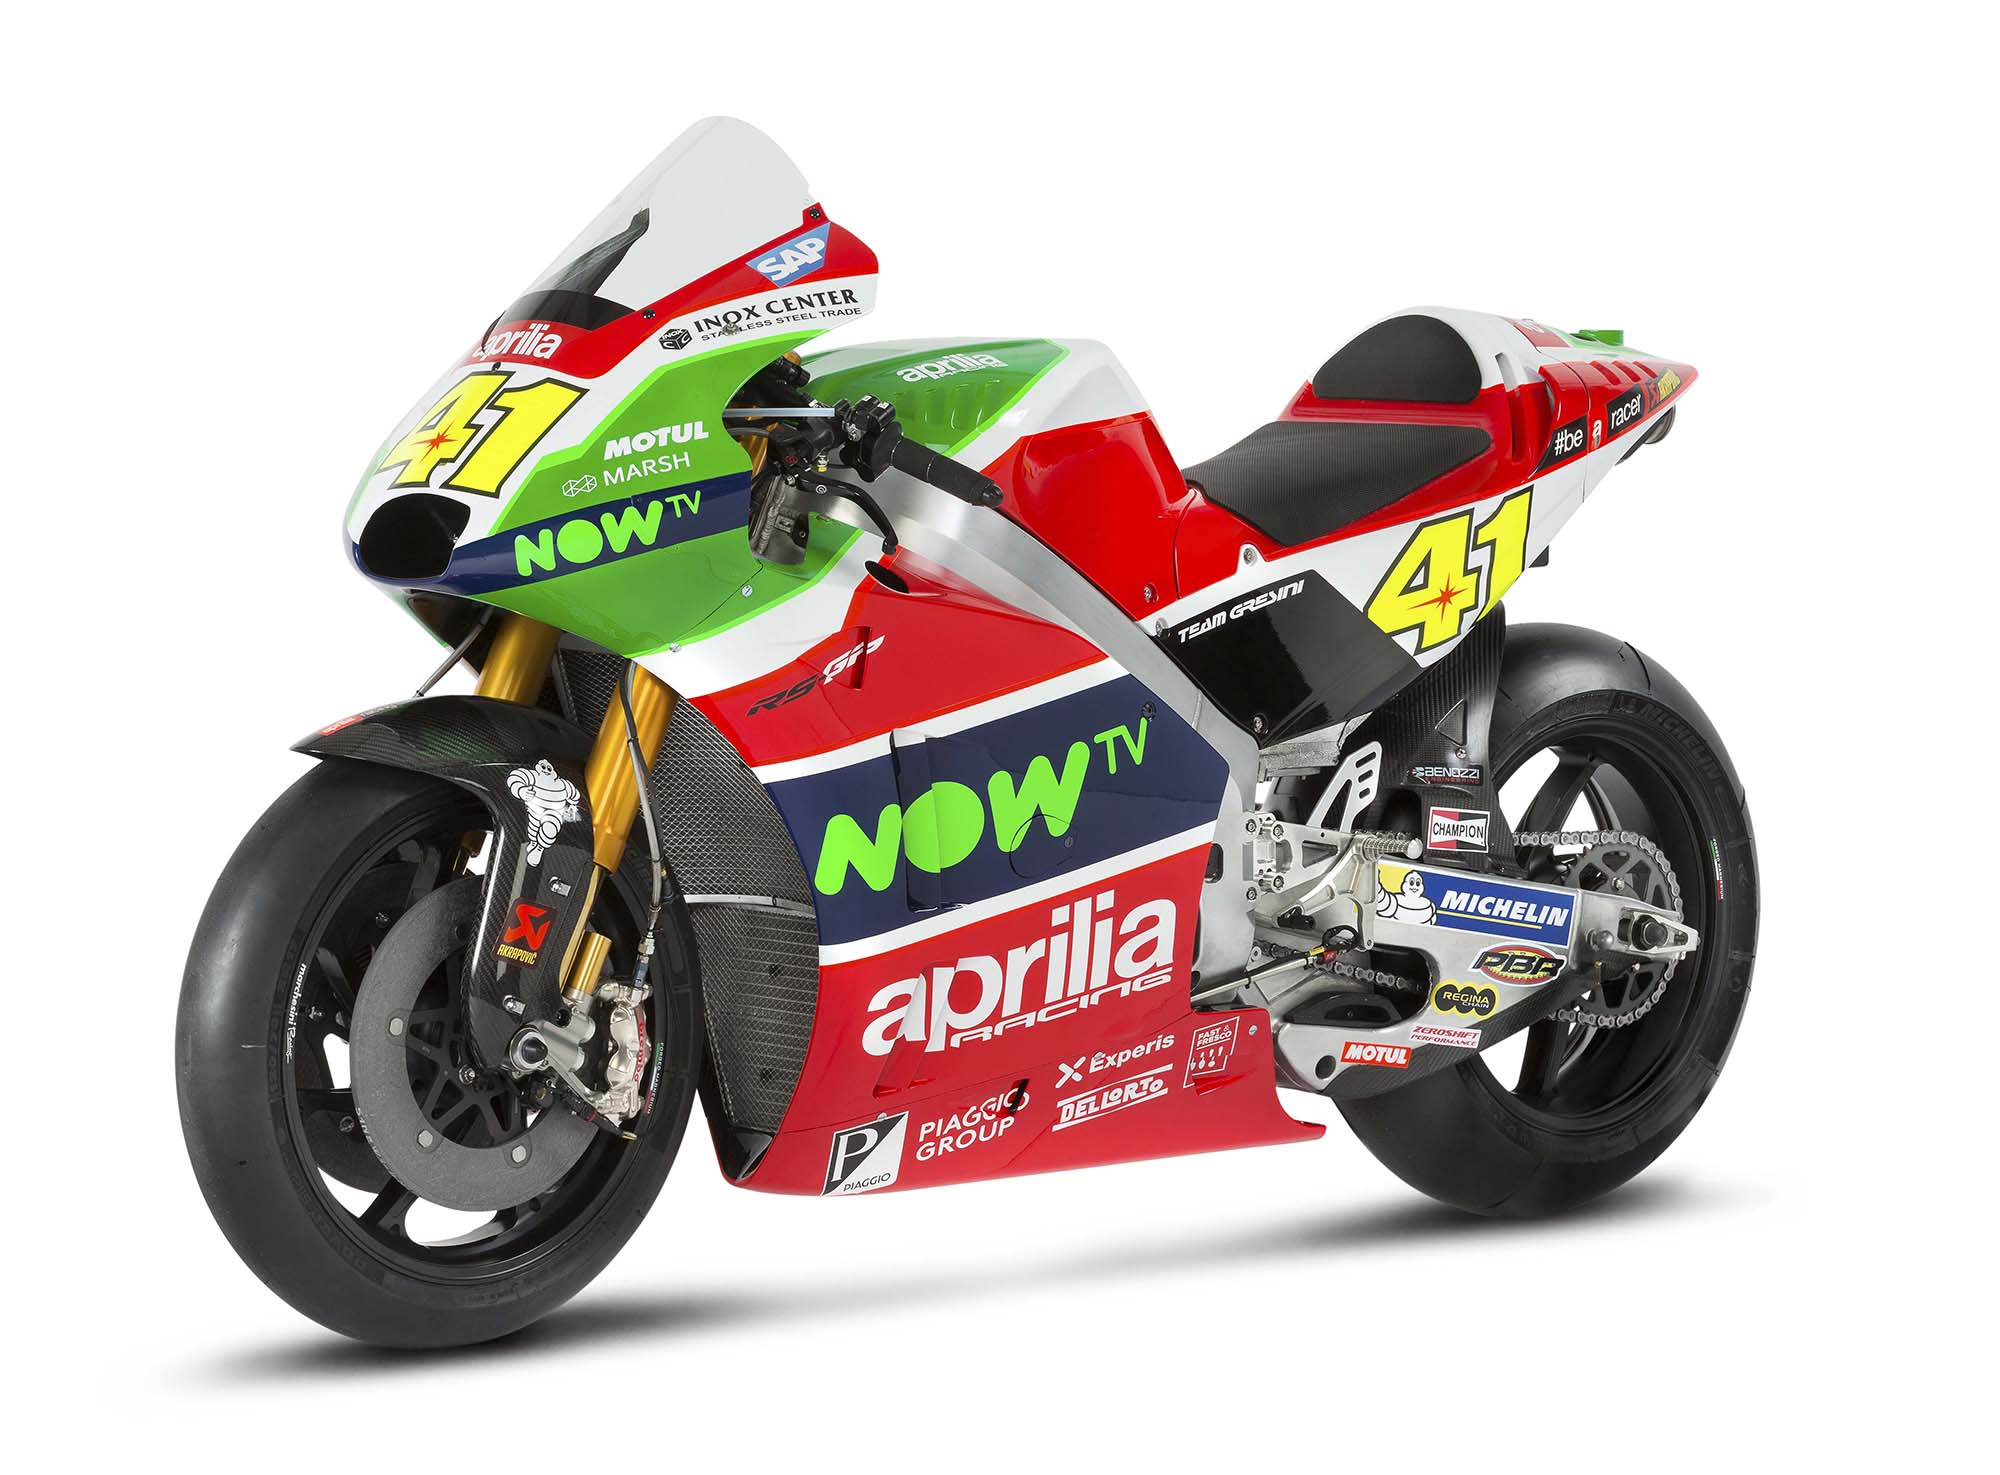 ... Aprilia Unveals the RS-GP Bike Livery for 2017 season - BikesRepublic